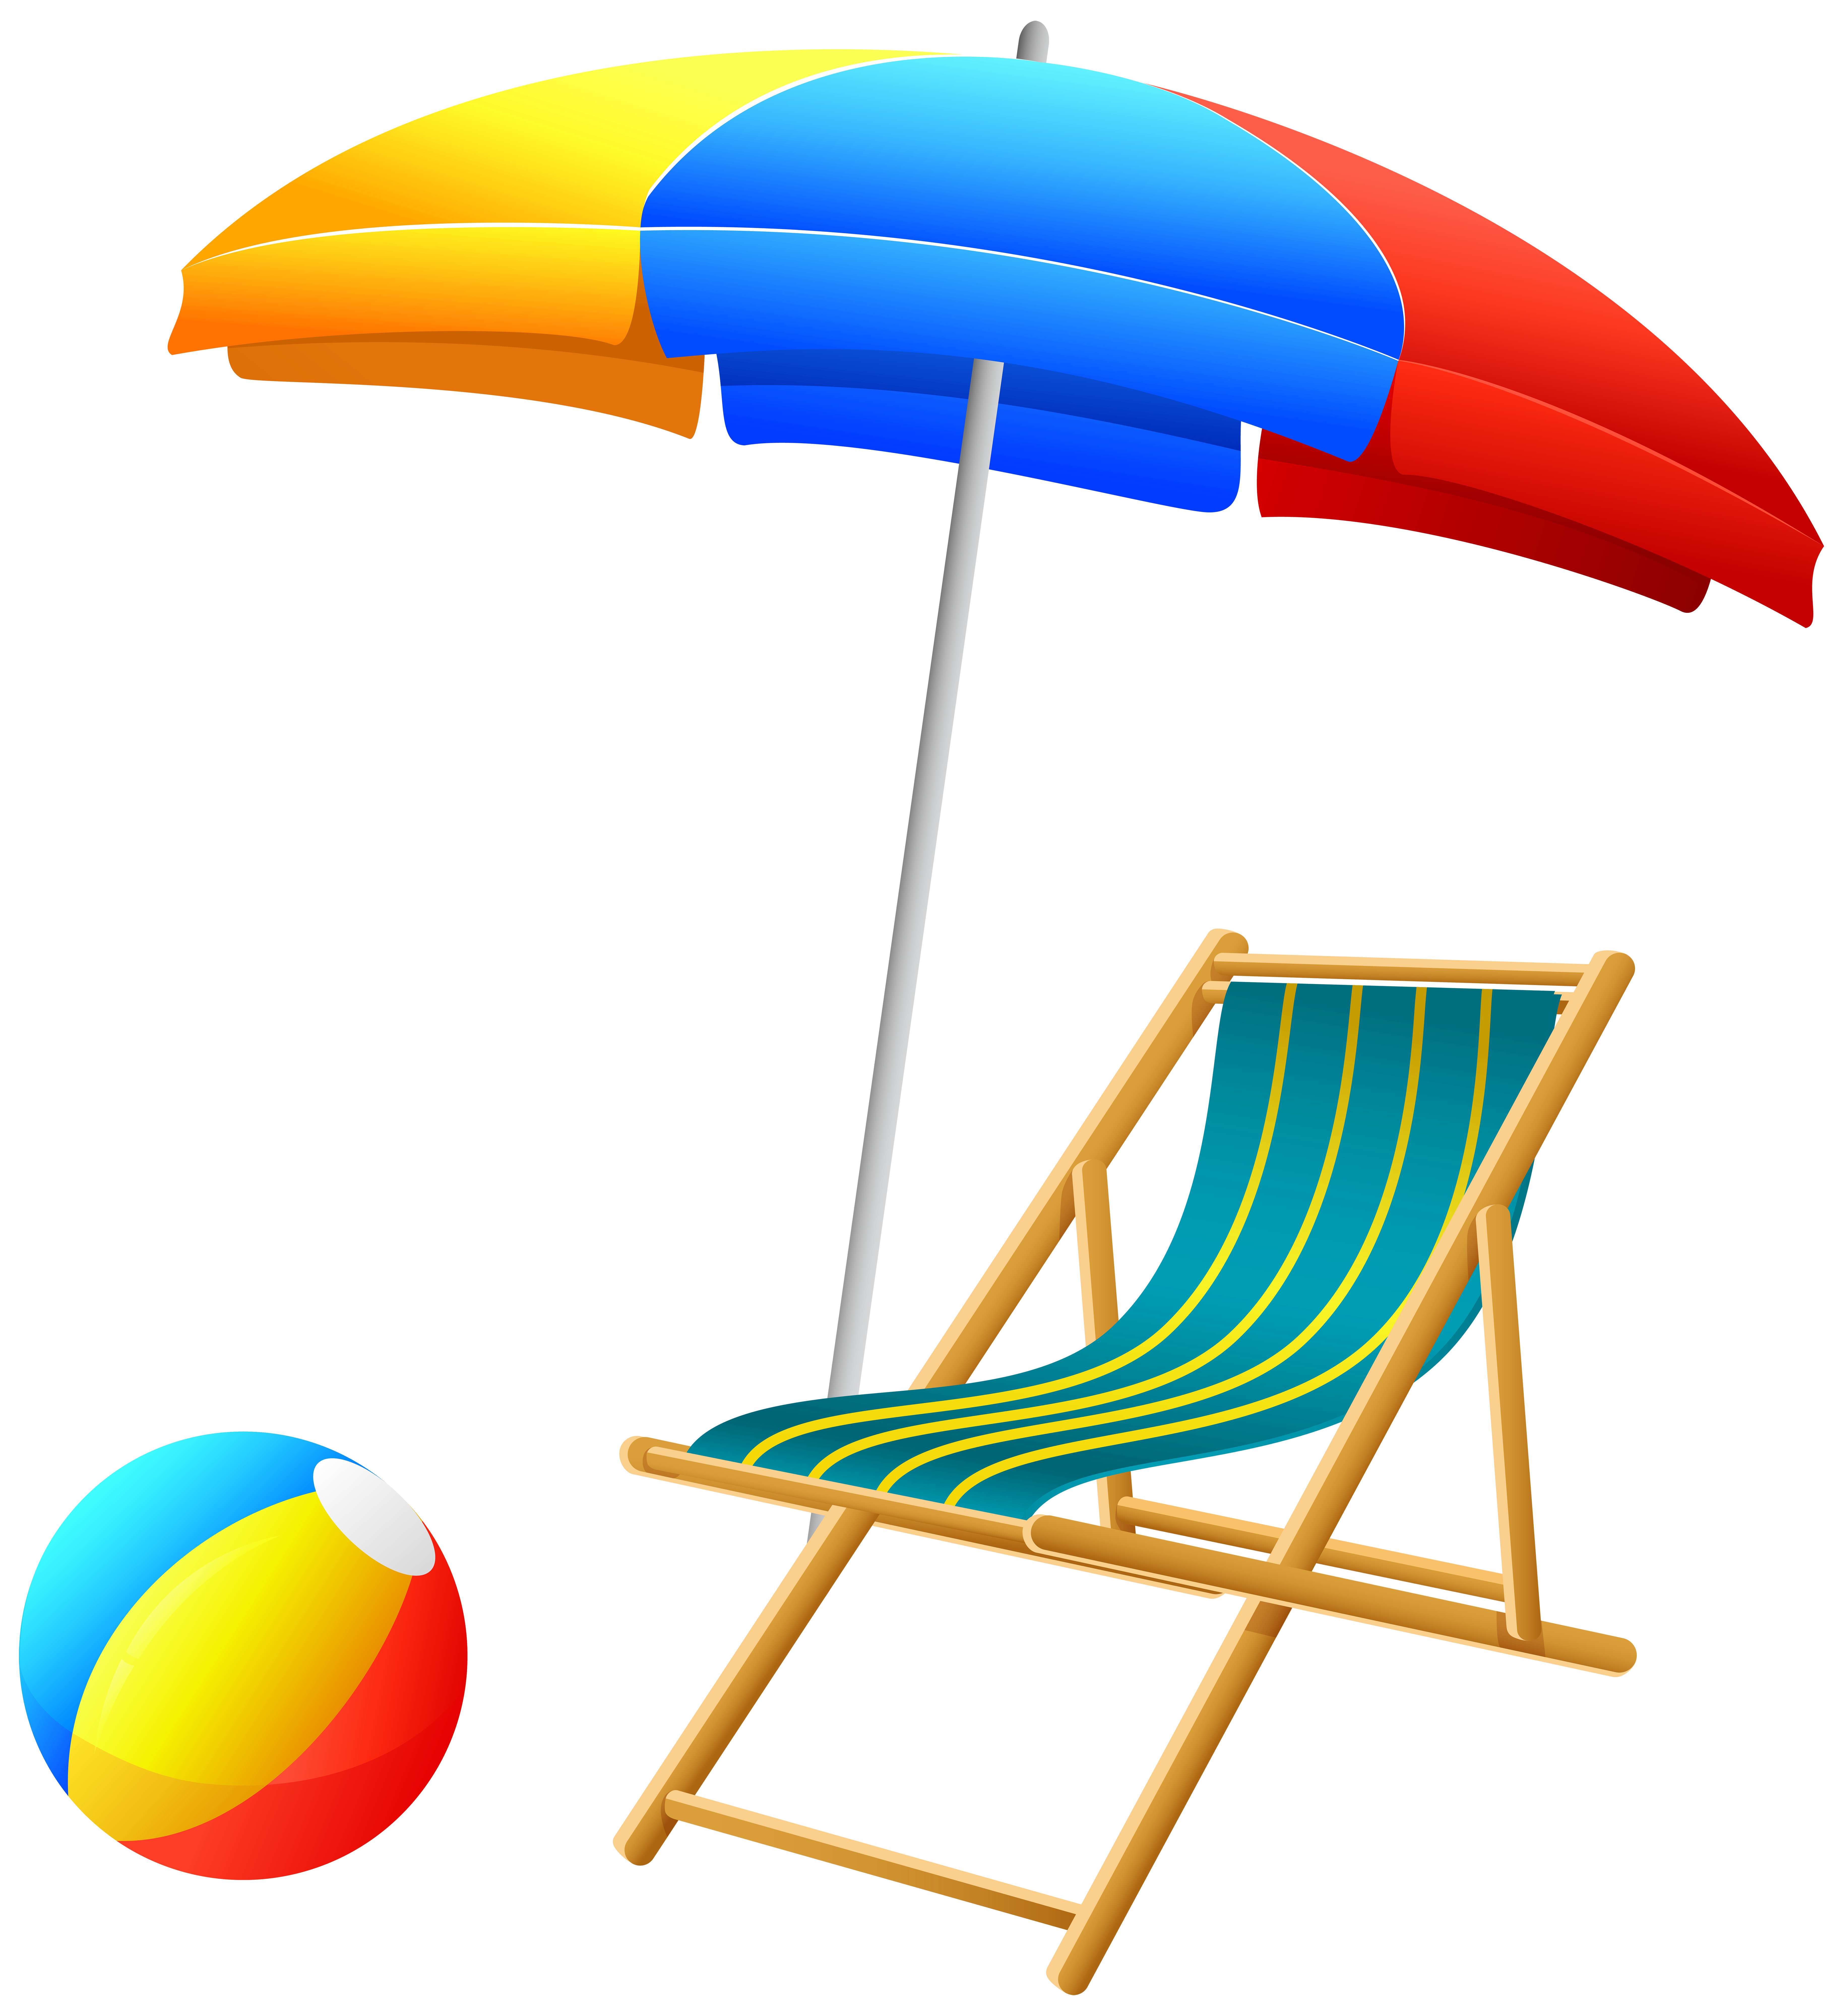 7313x8000 Beach Umbrella With Chair And Ball Png Clip Art